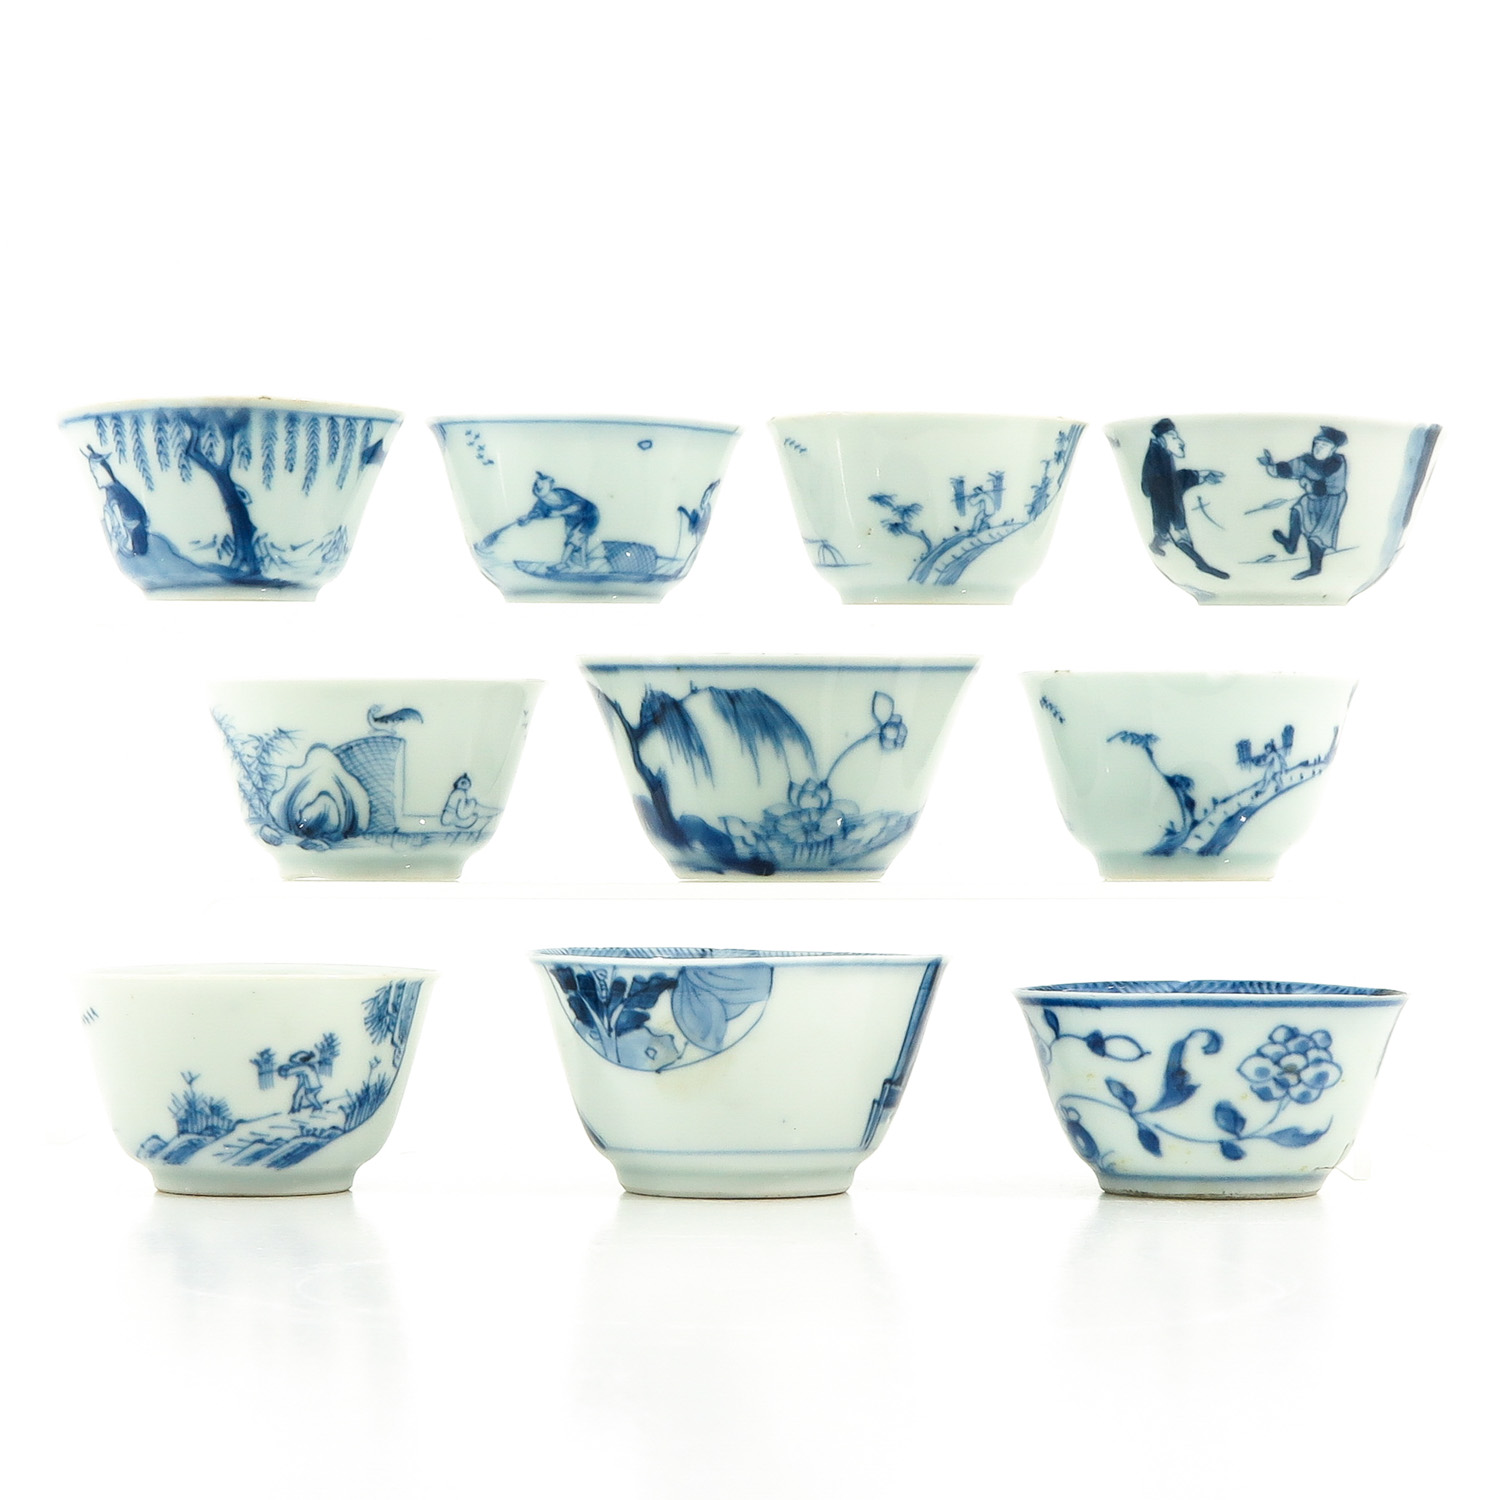 A Collection of 10 Blue and White Cups - Image 3 of 10